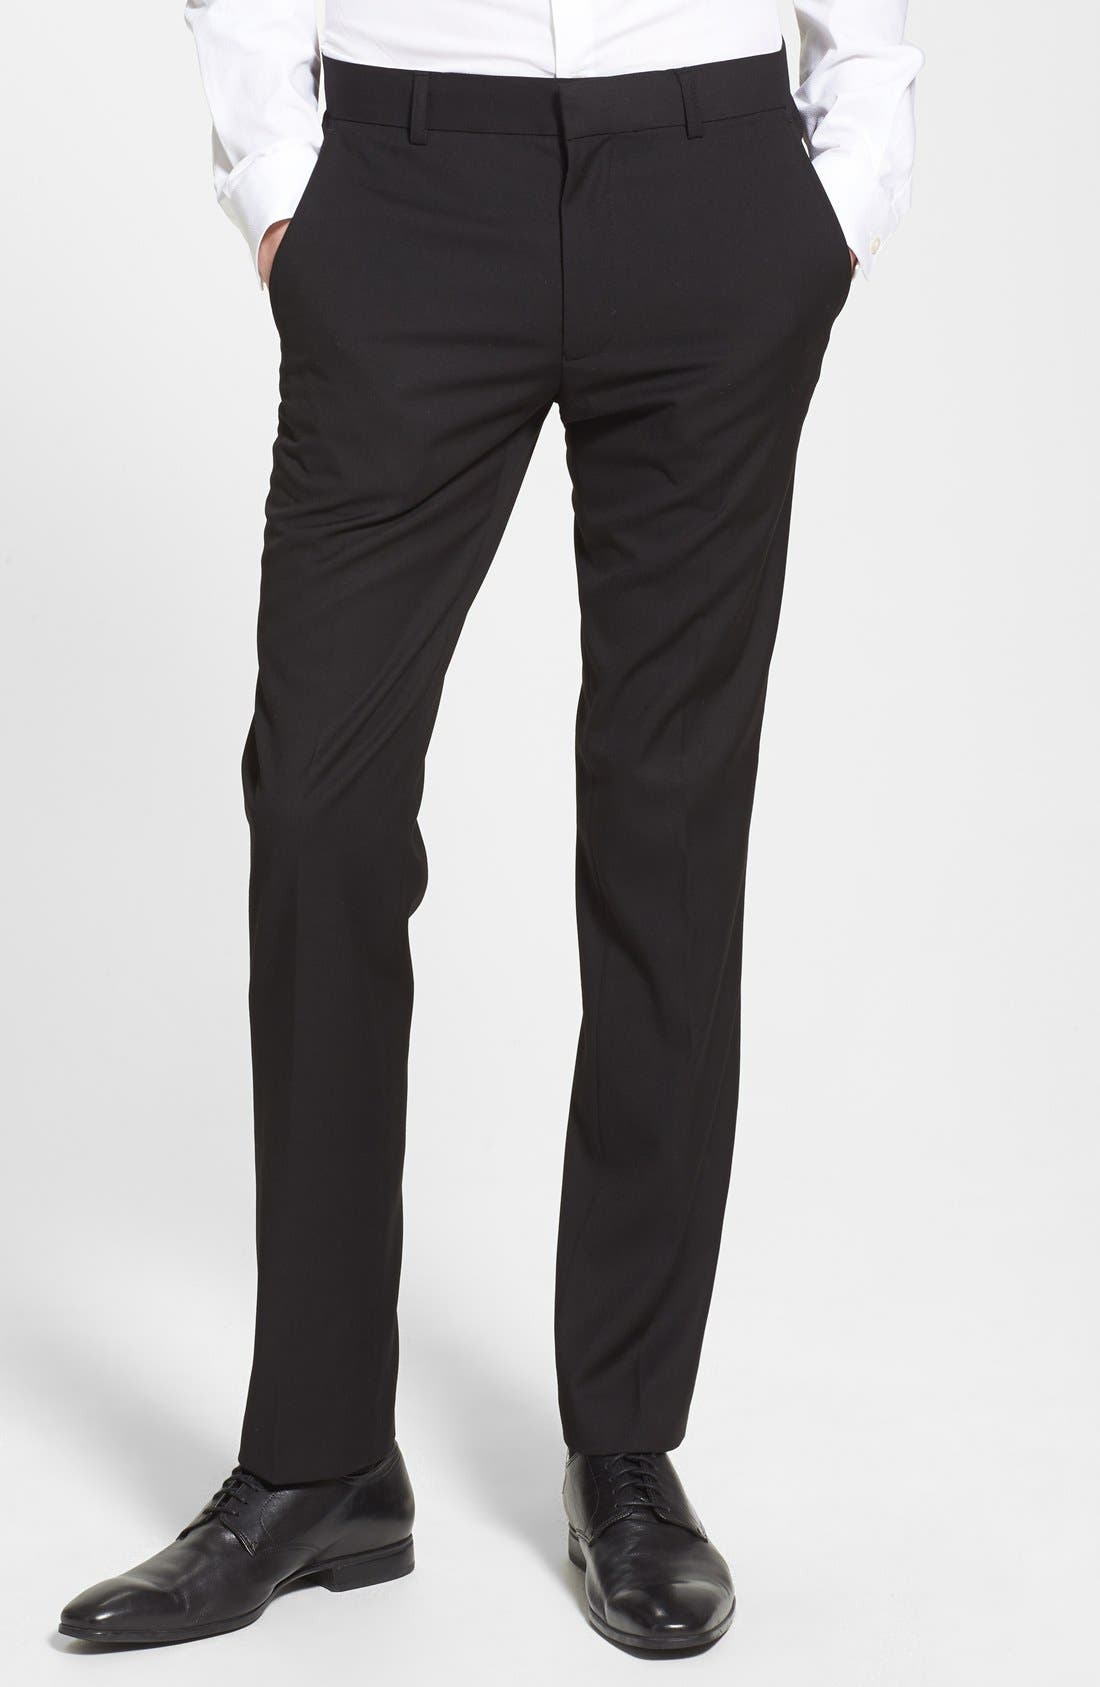 Alternate Image 1 Selected - Topman Black Textured Skinny Fit Flat Front Trousers